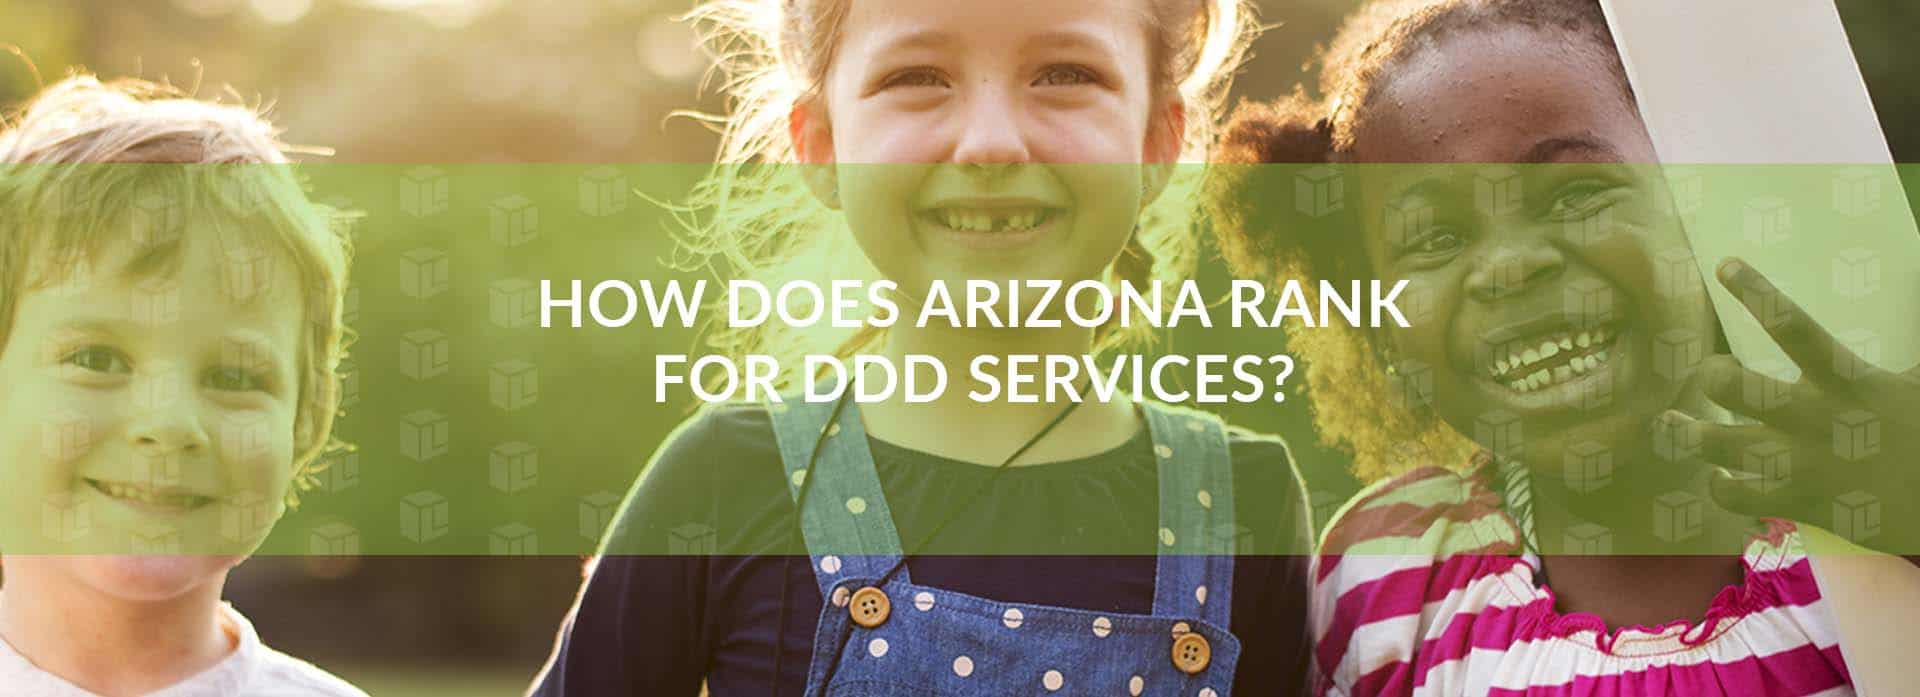 How Does Arizona Rank For DDD Services